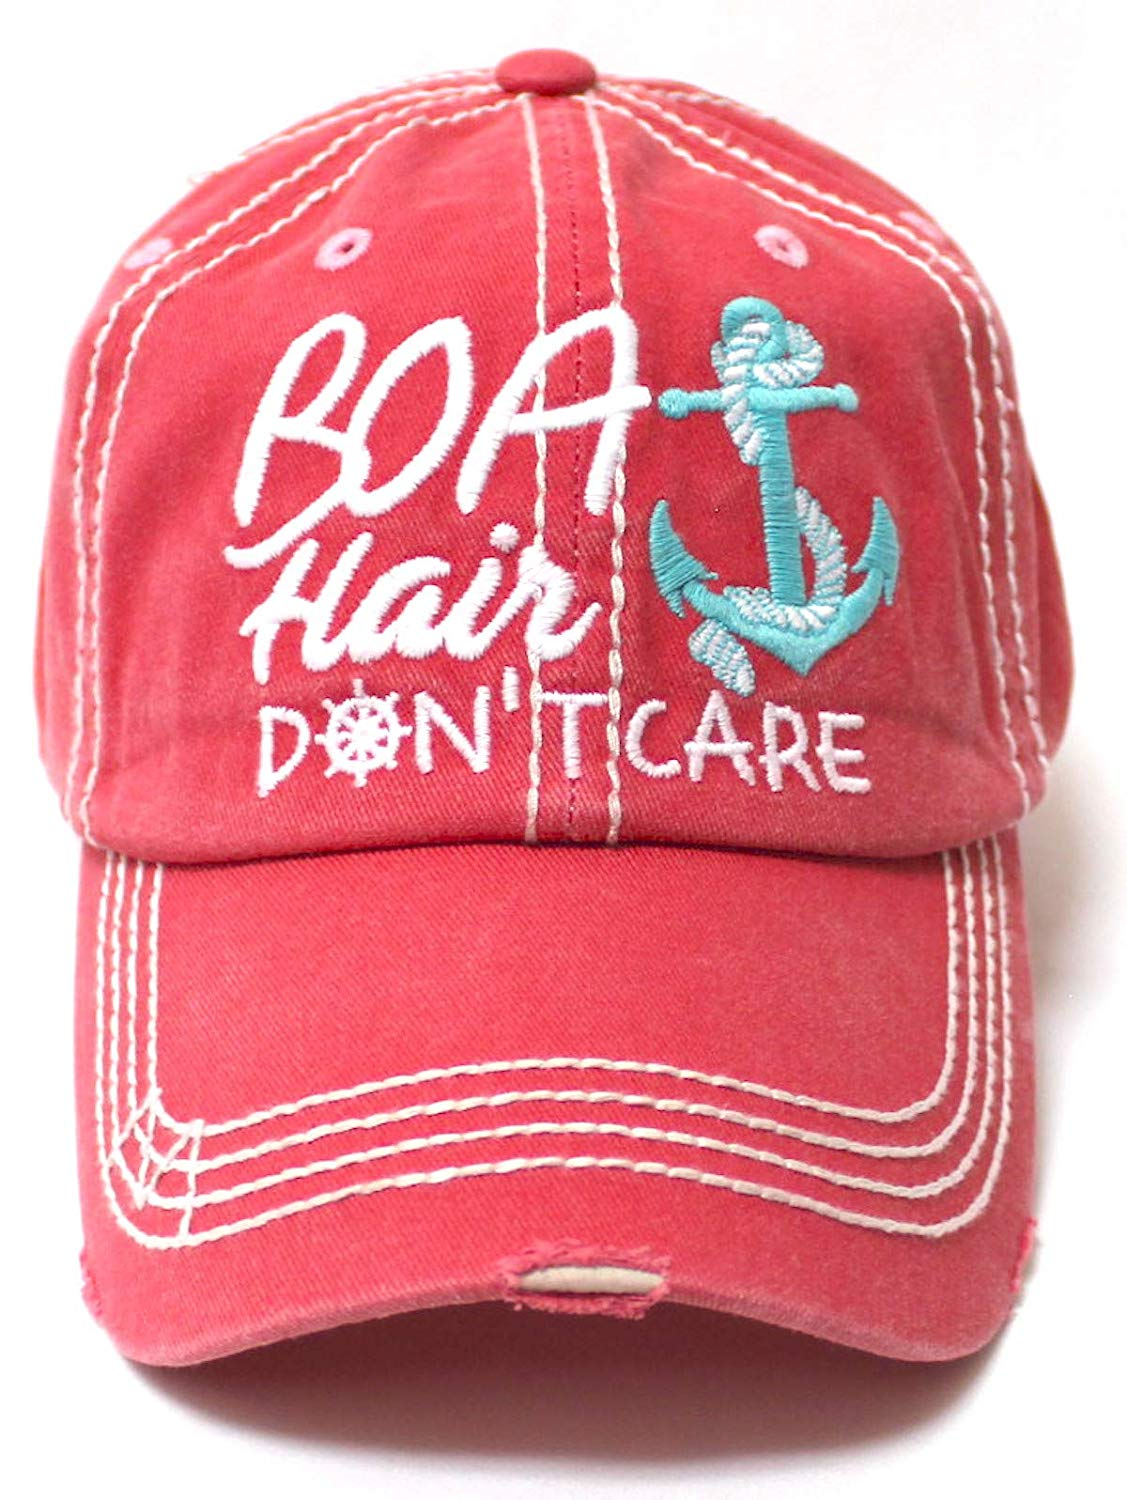 CAPS 'N VINTAGE Beach Accessory Boat Hair Don't Care Monogram Baseball Hat, Coral Rose - Caps 'N Vintage